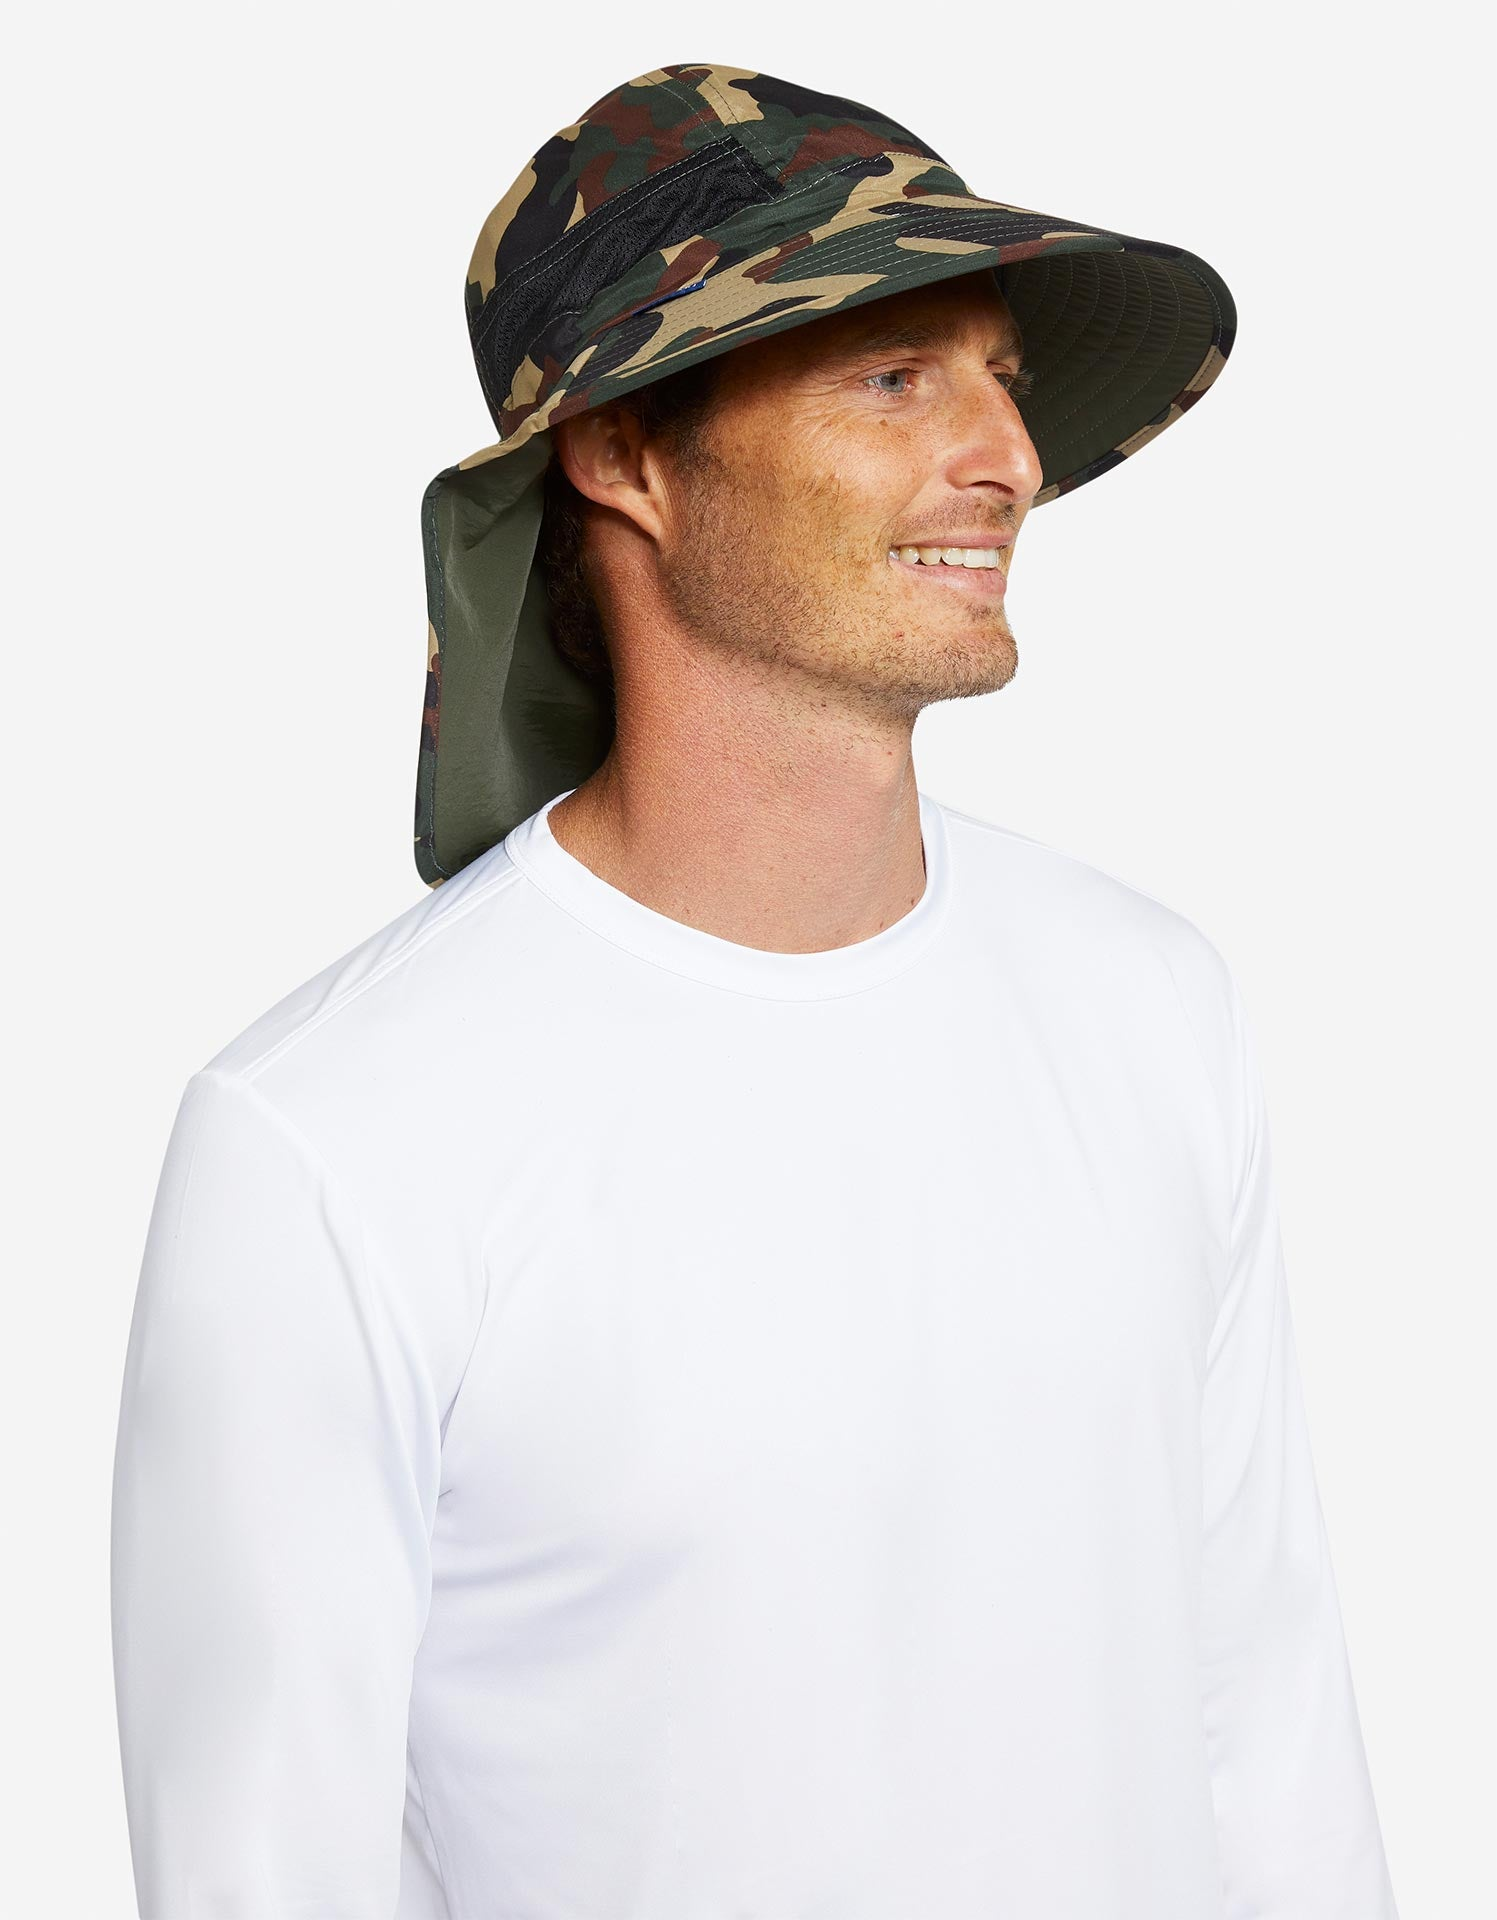 Great for The Beach Universal Fit Gardening /& More Fishing Solbari UPF 50+ Protective Adventure Sun Hat UV Protection for Men /& Women